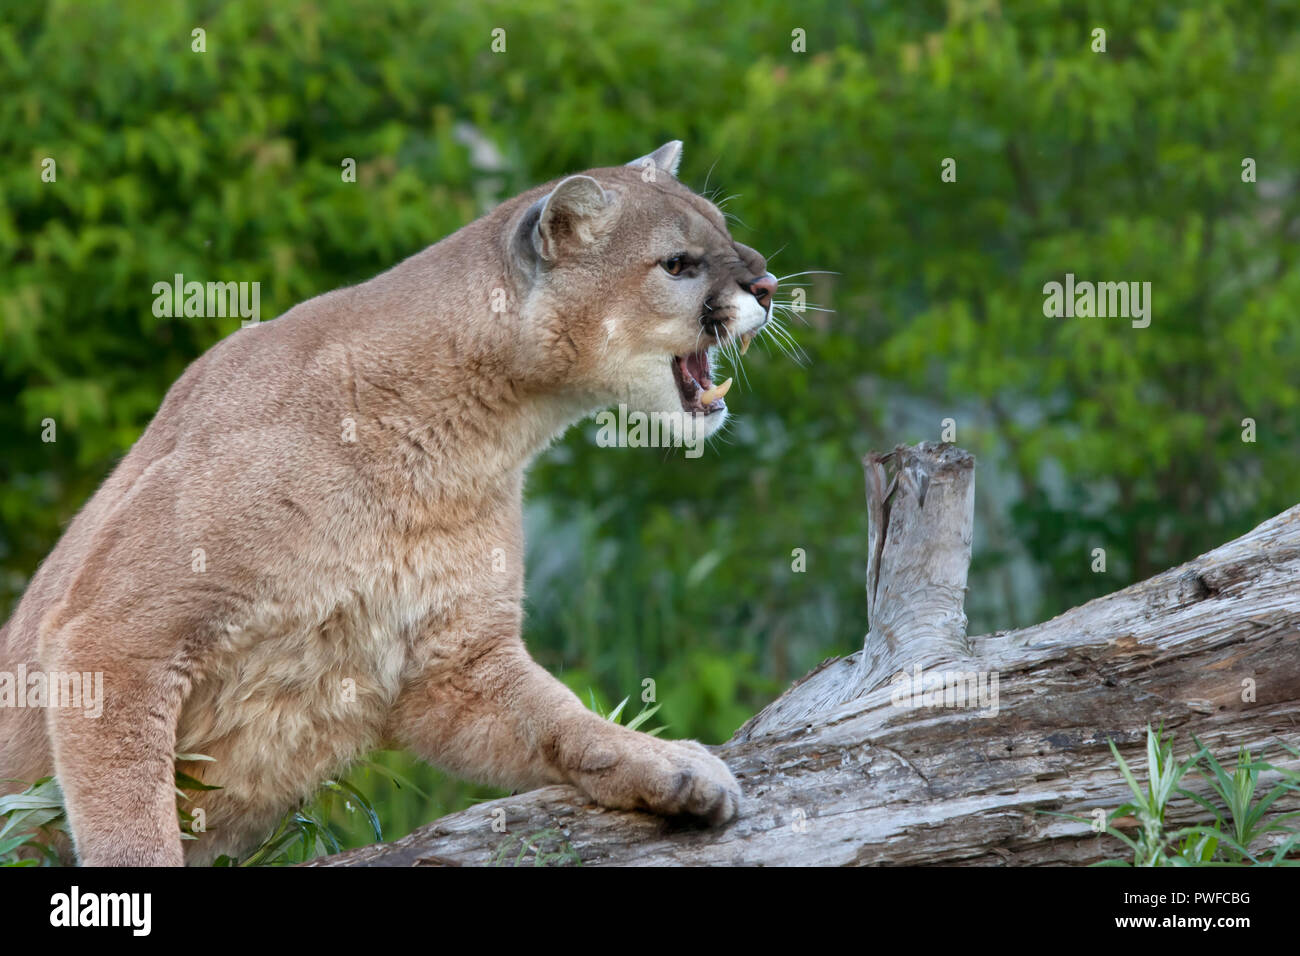 Snarling Mountain Lion - Stock Image